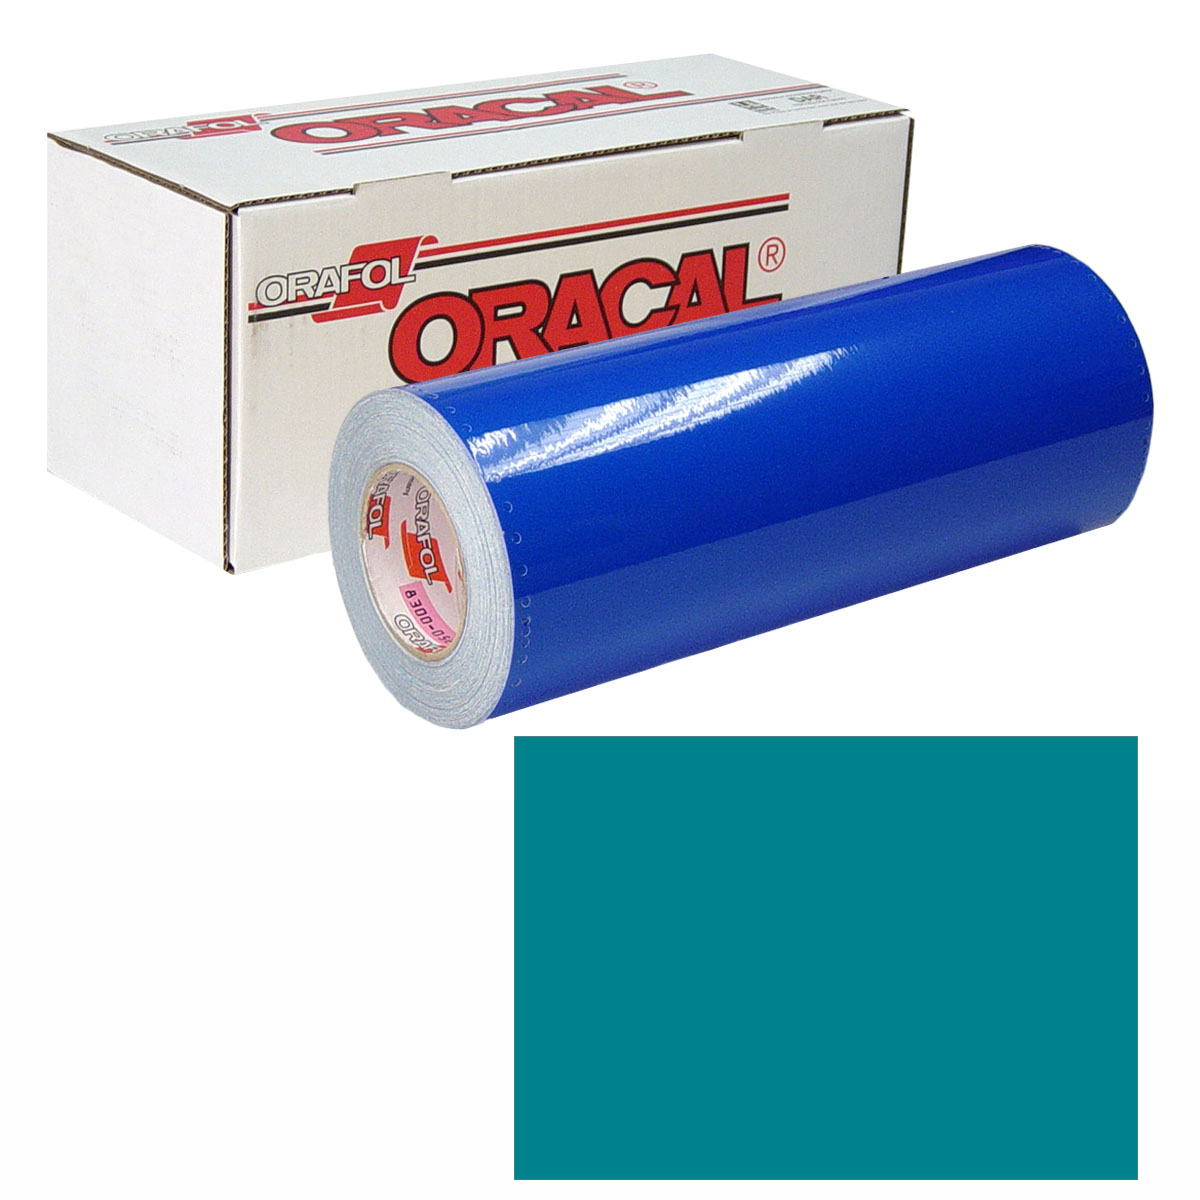 ORACAL 631 Unp 30In X 10Yd 066 Turquoise Blue